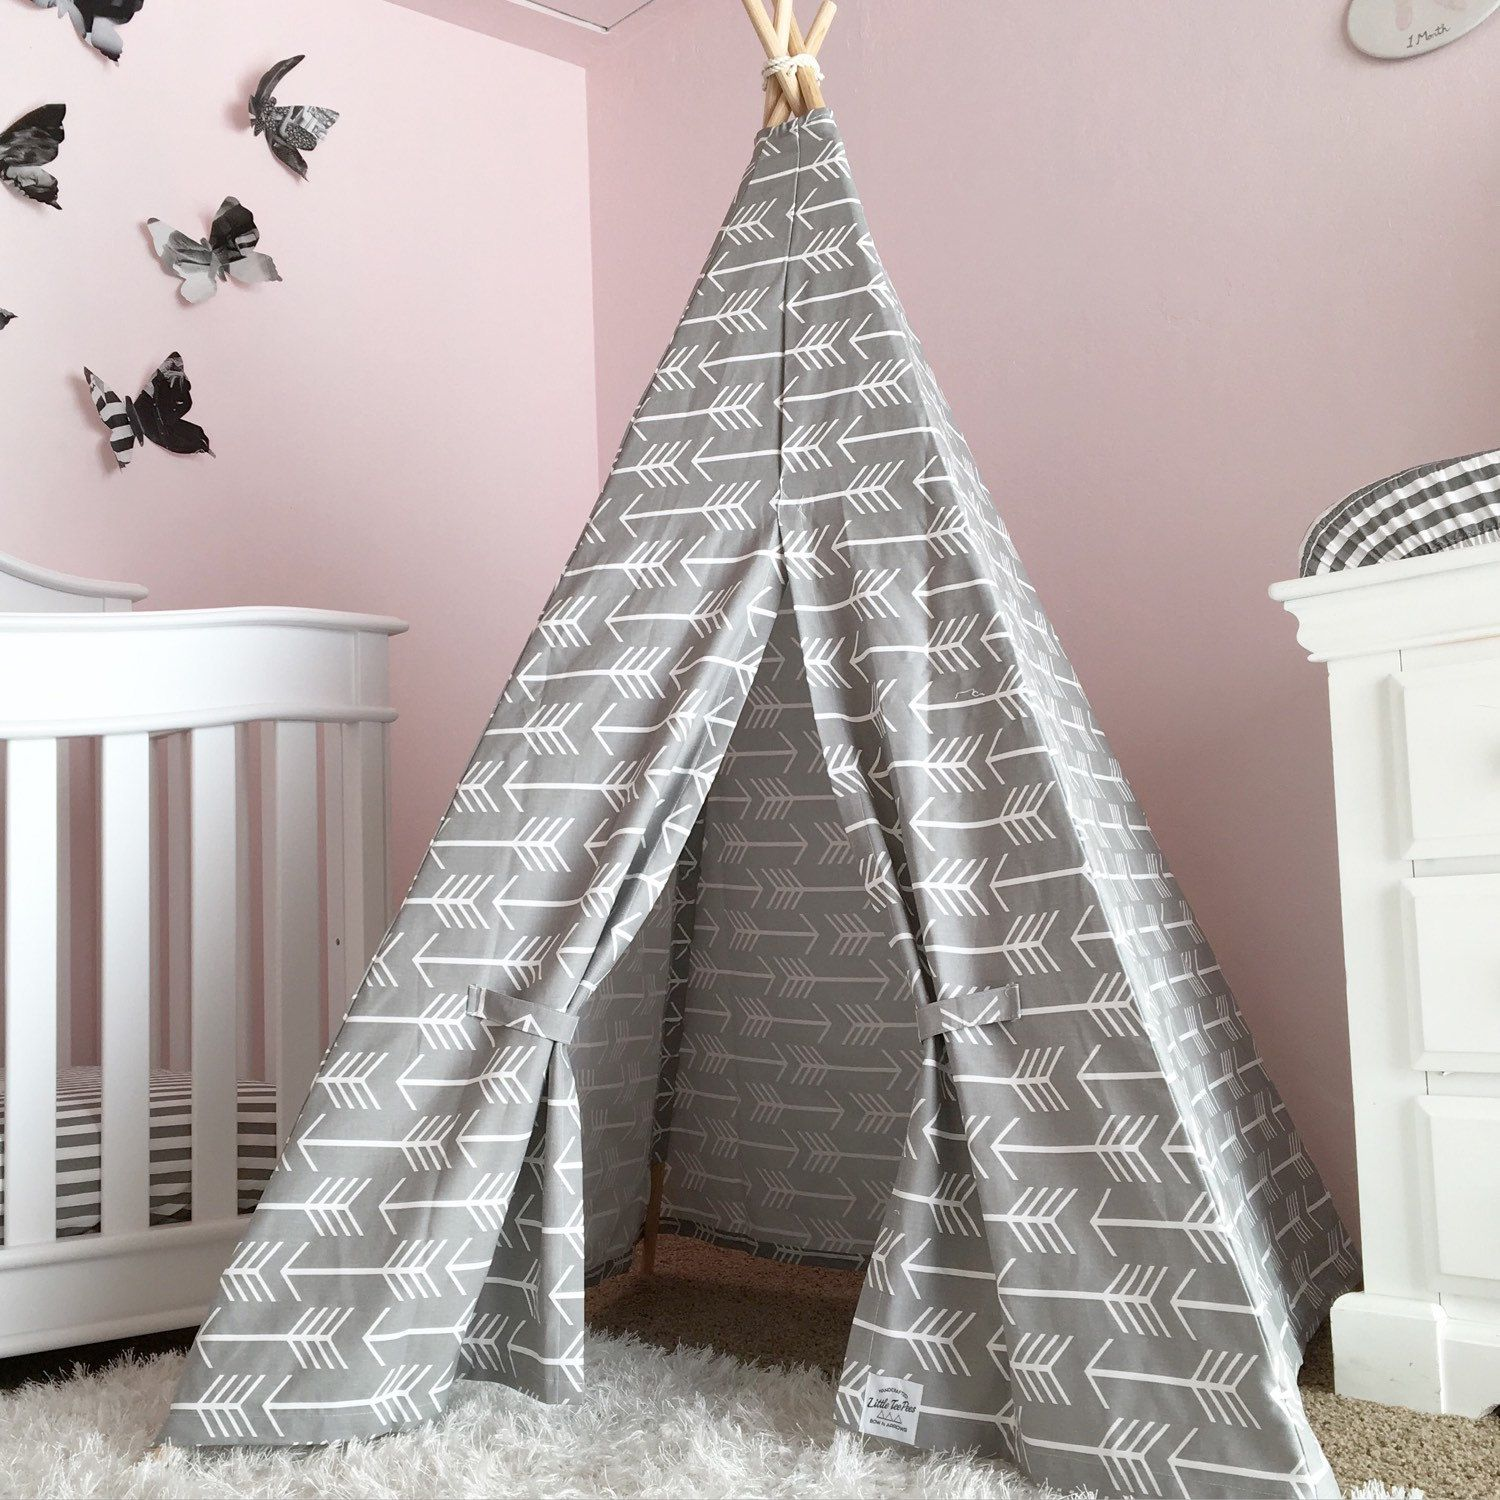 Kids Teepee Play Tent in Grey Arrow Canvas Handmade of durable cotton  canvas and INCLUDES the Wooden Poles! This teepee makes the perfect gift  for your ...